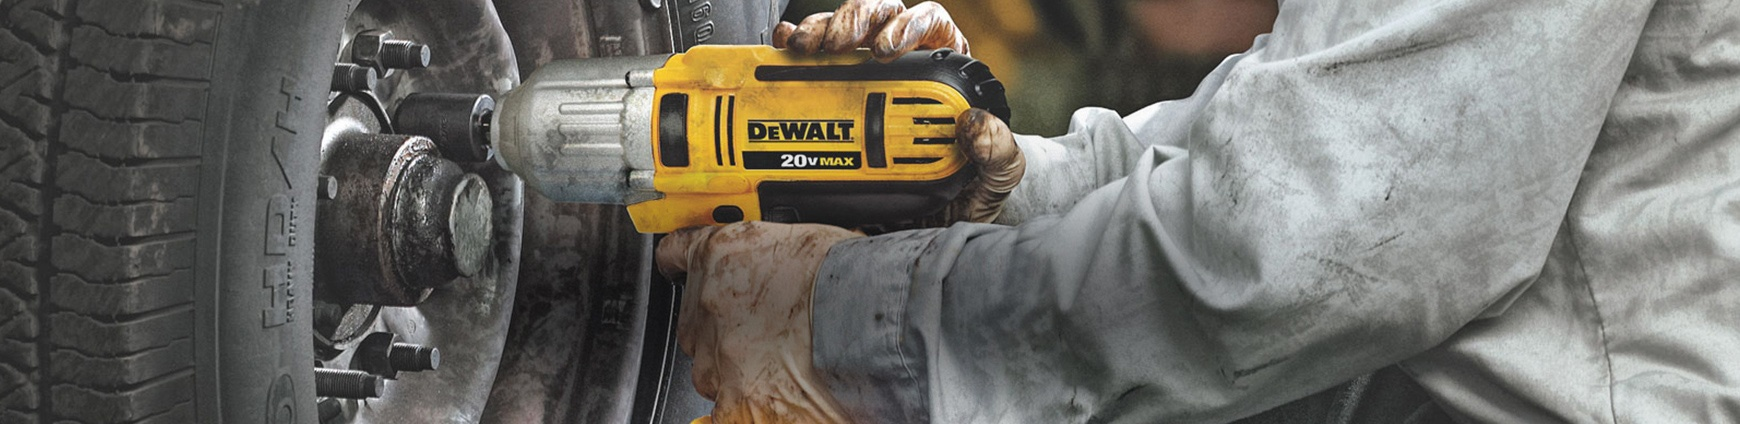 Tough Jobs Require High Calibre Equipment Whether You Need A Power Tool Hand Storage Solution Or Accessory Take It To The Next Level With Dewalt